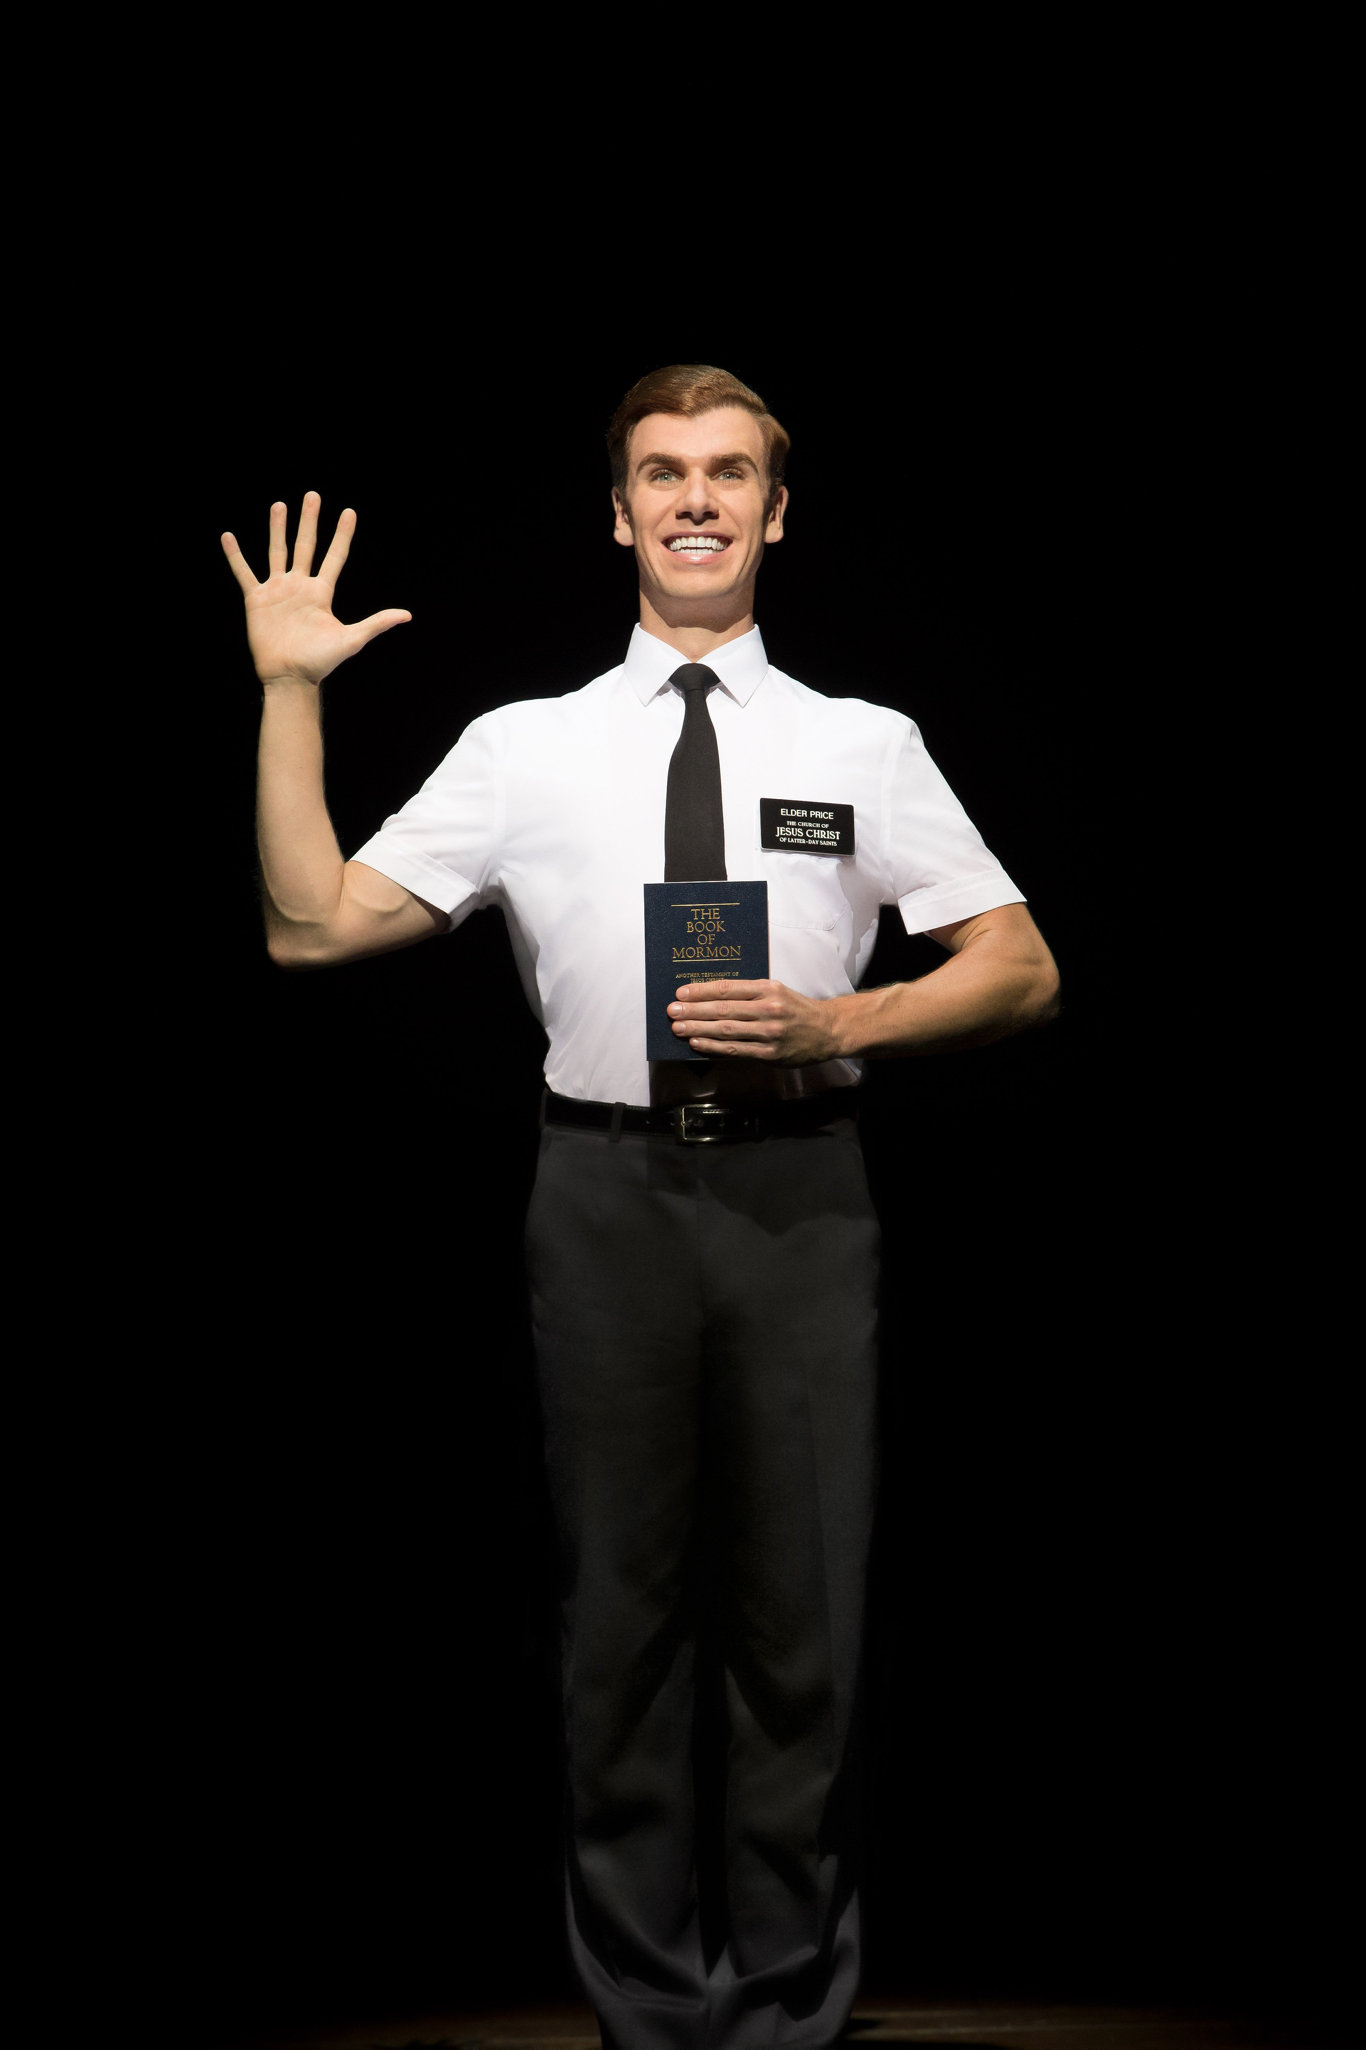 HELLO: Blake Bowden stars as Elder Price in the musical comedy The Book of Mormon, currently playing QPAC's Lyric Theatre.